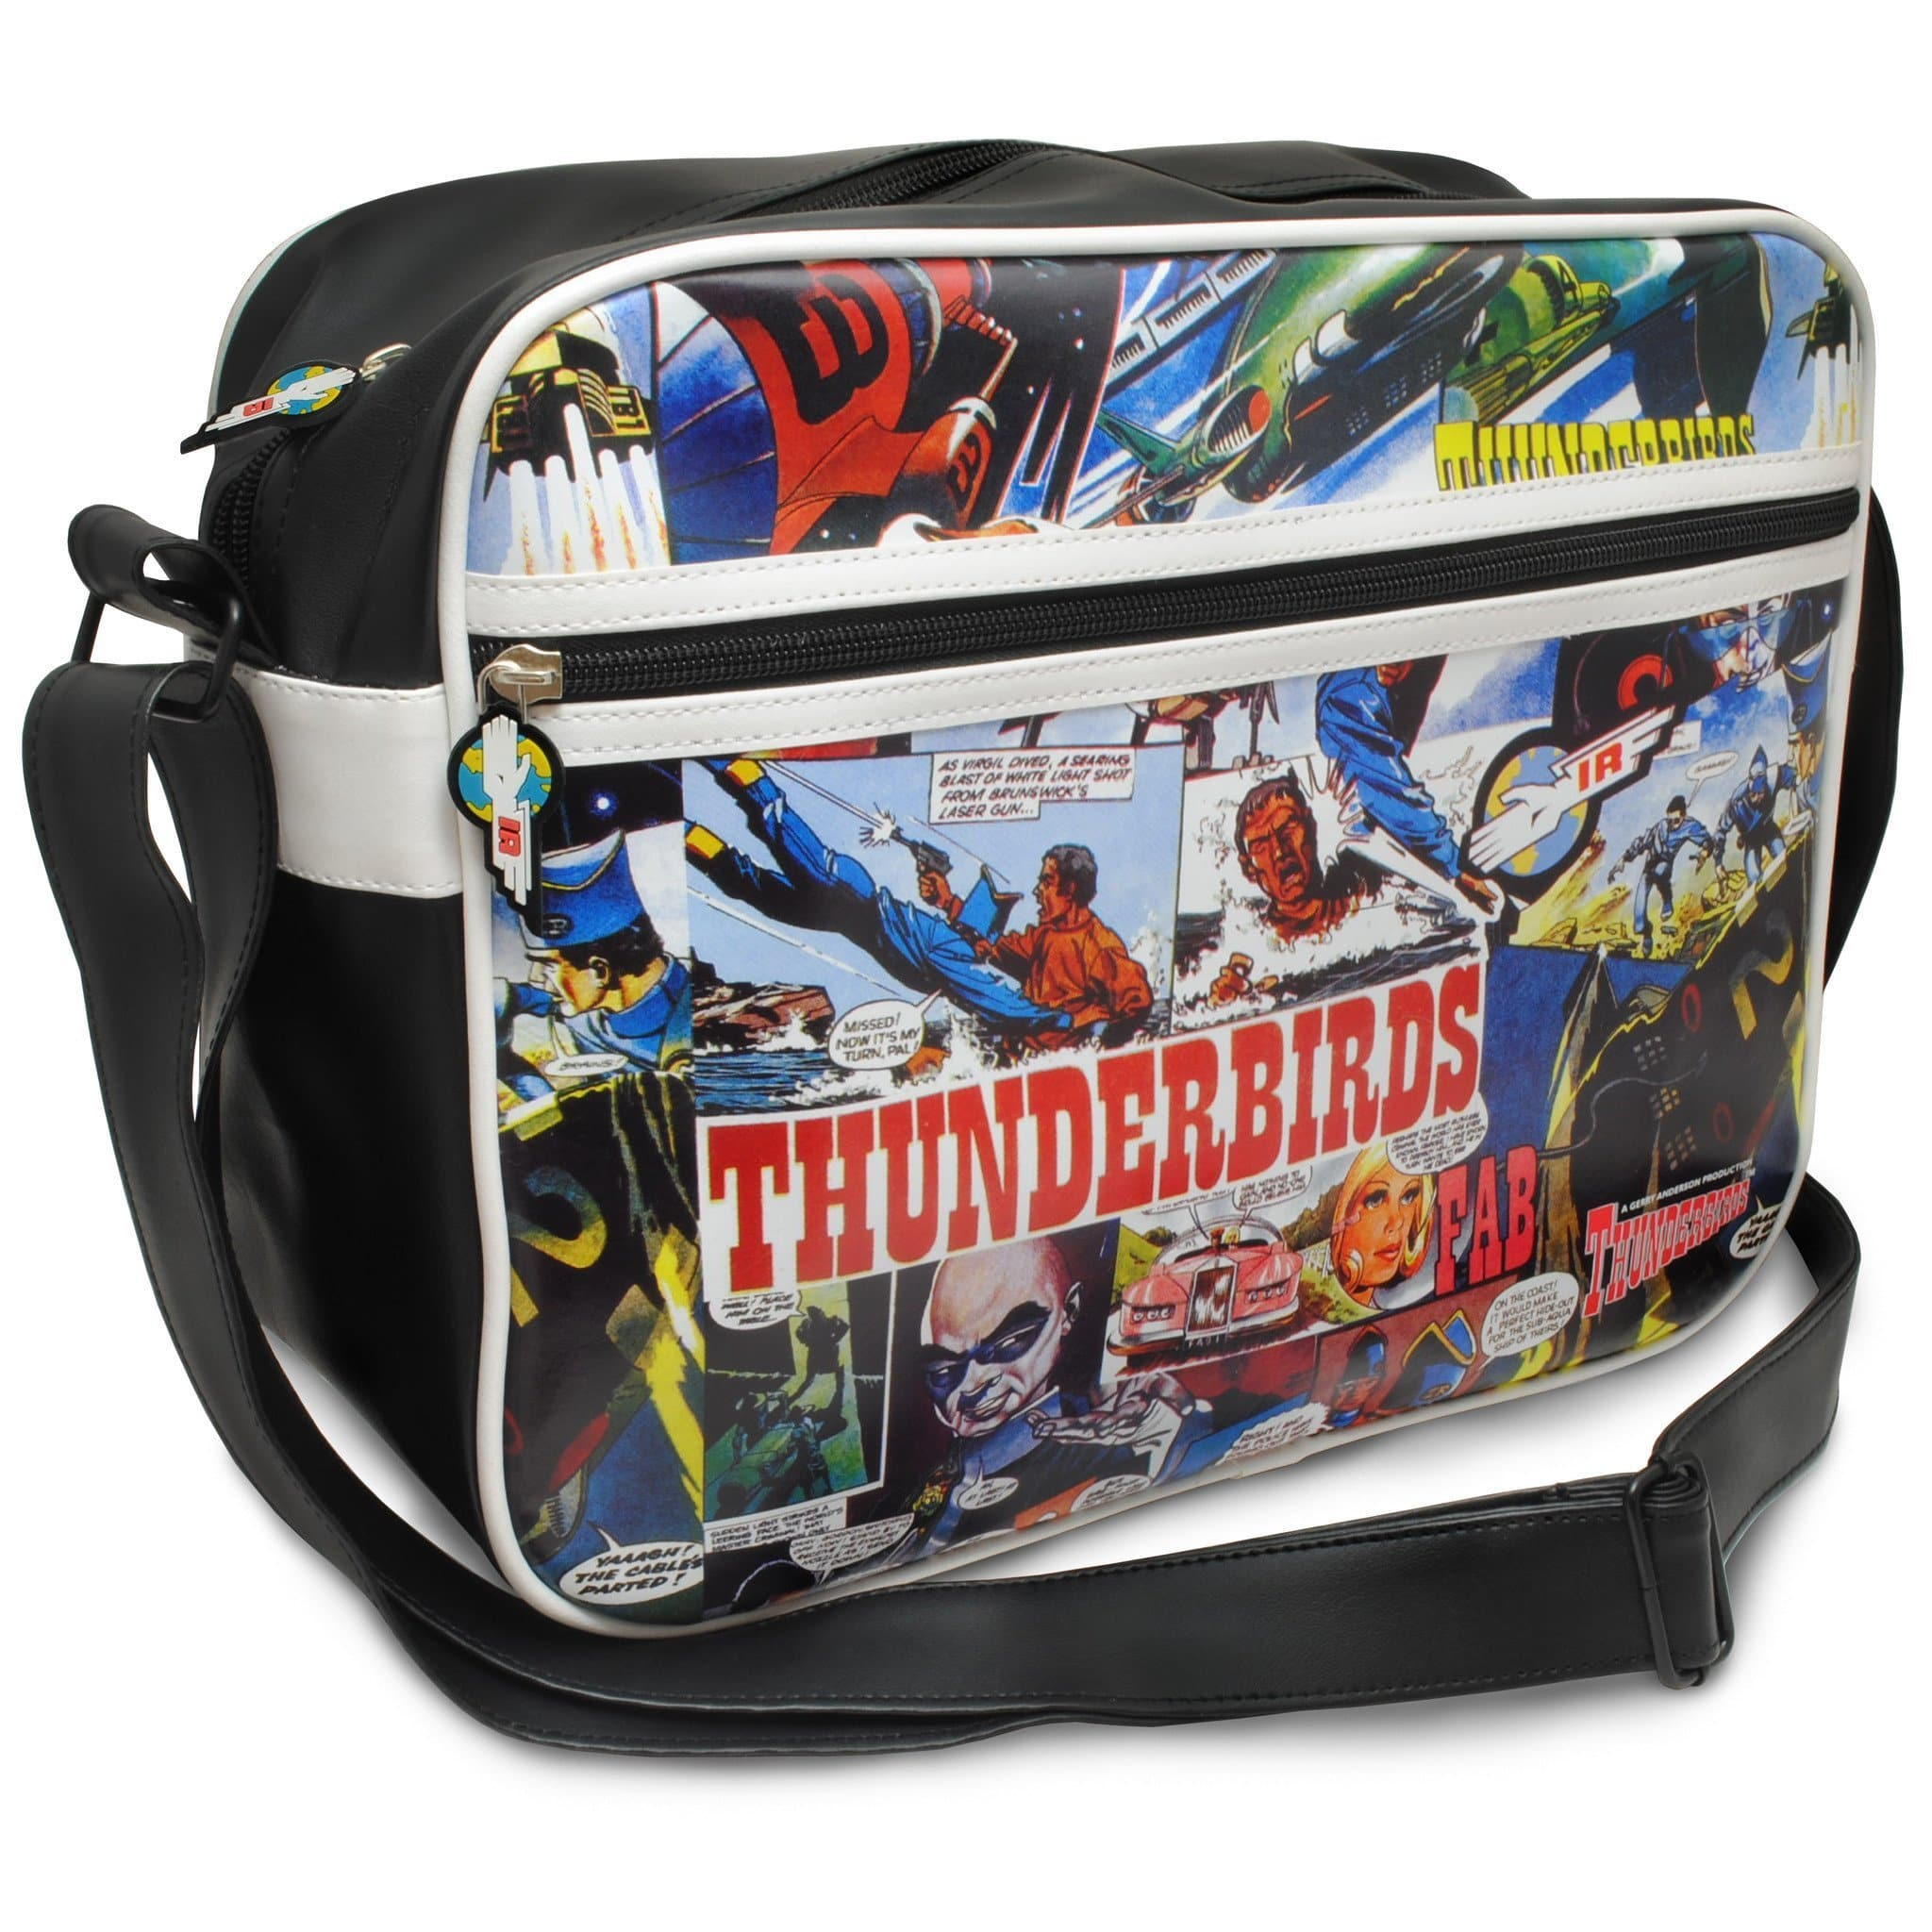 Thunderbirds Comic Strip Messenger Bag - Gerry Anderson Official - 3